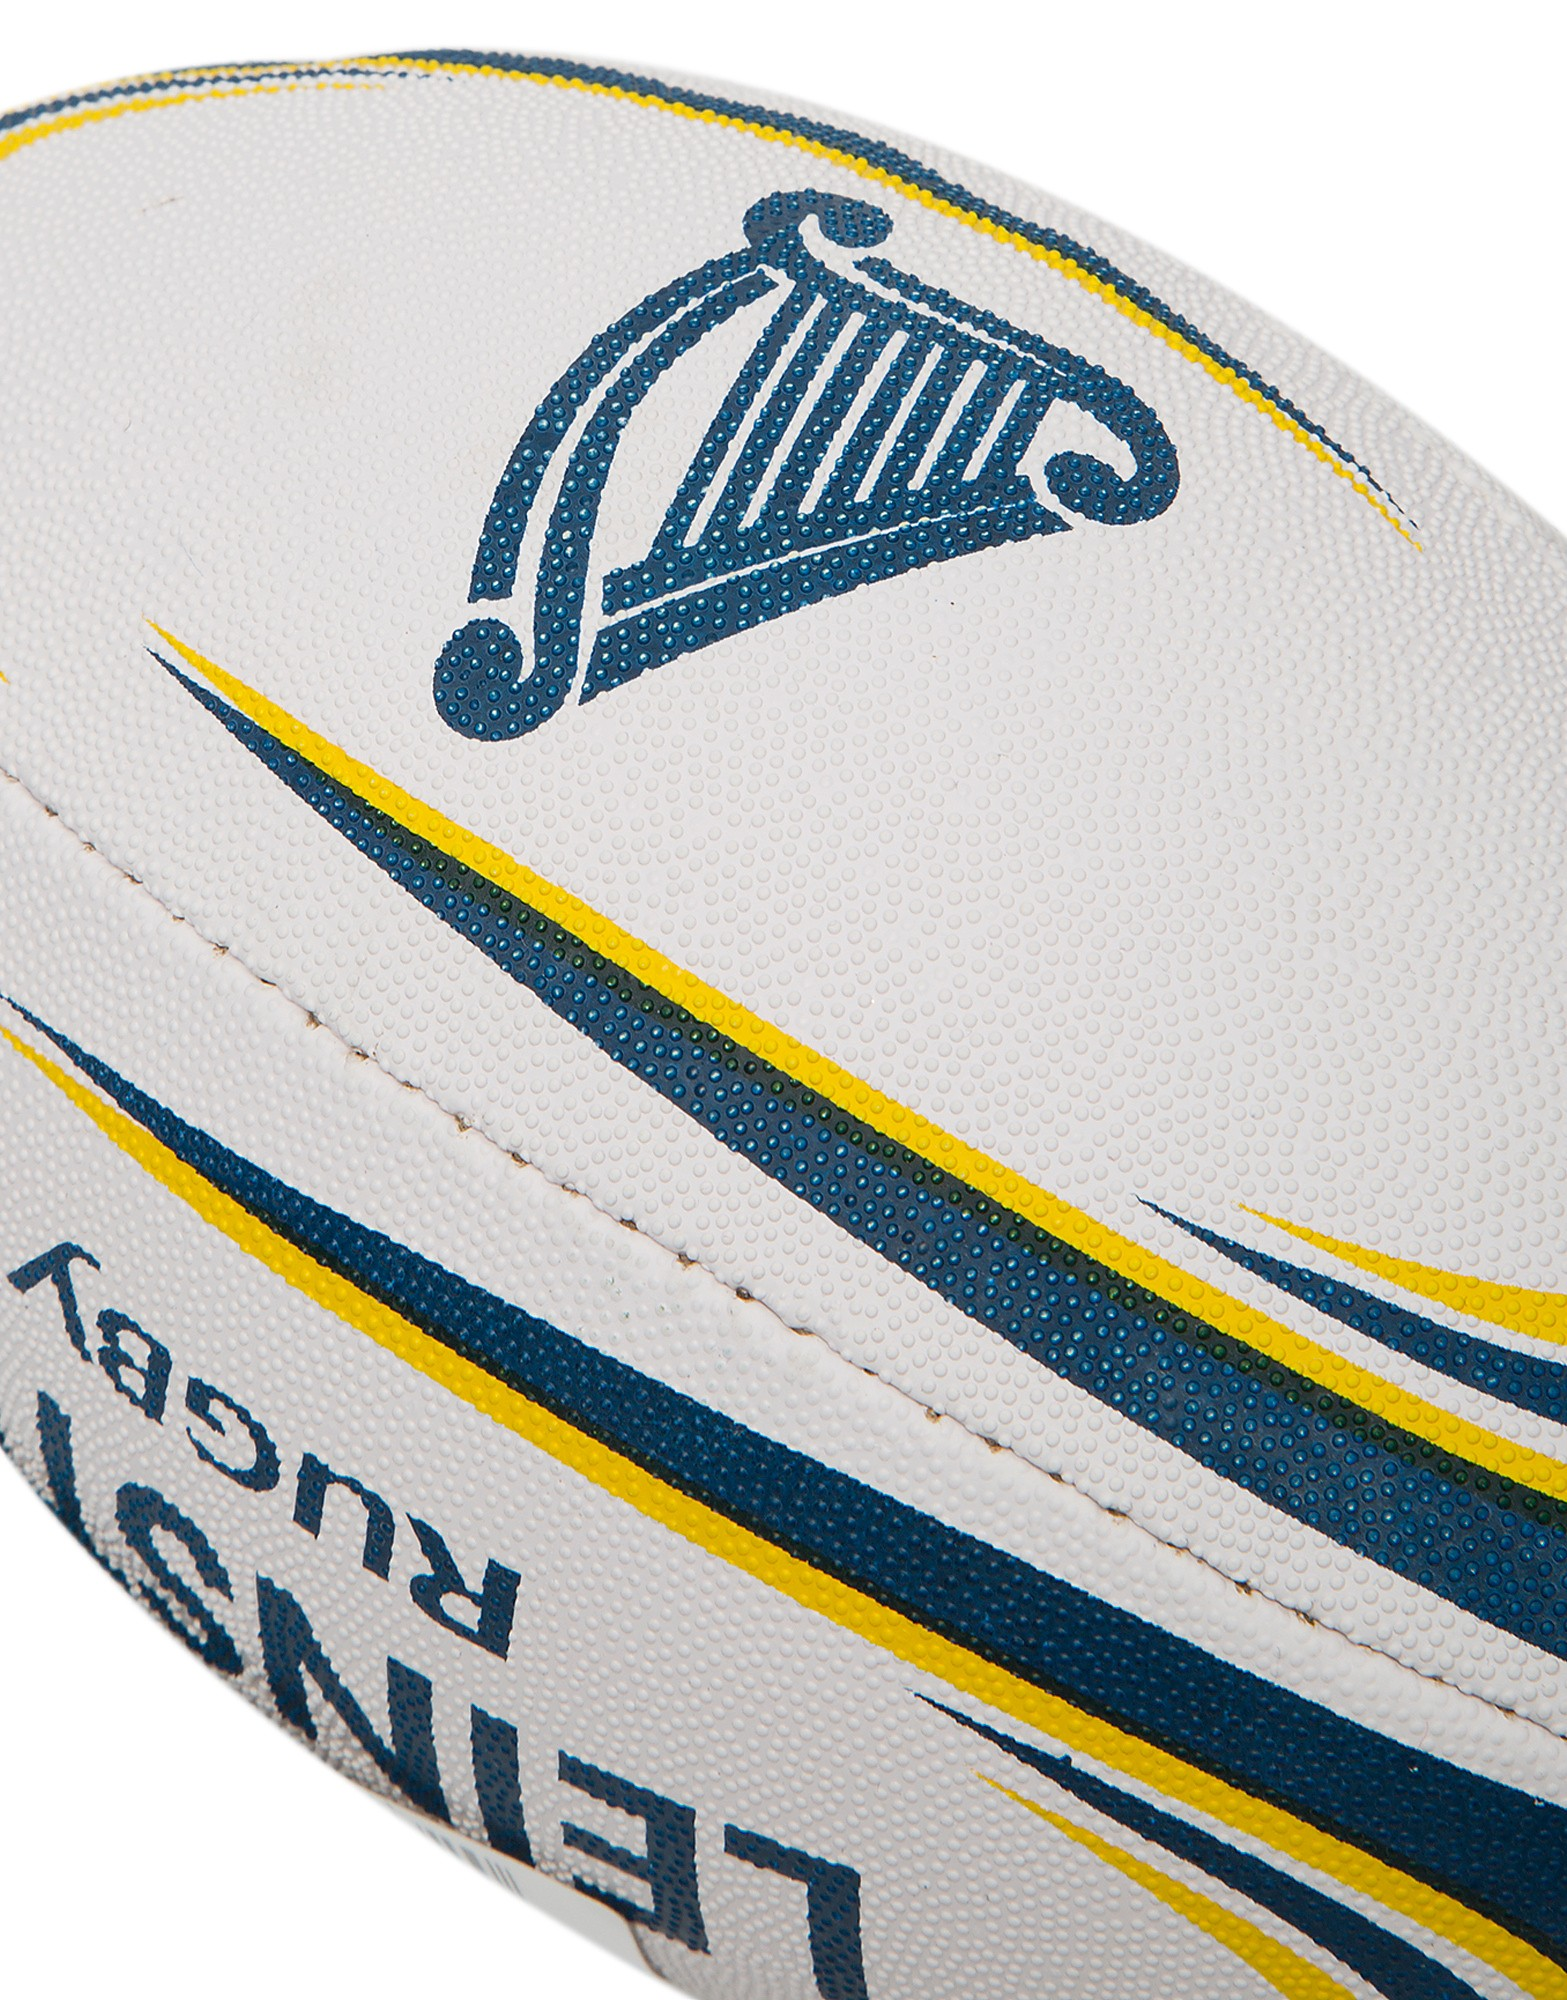 Daricia Leinster Mini-Rugby-Ball